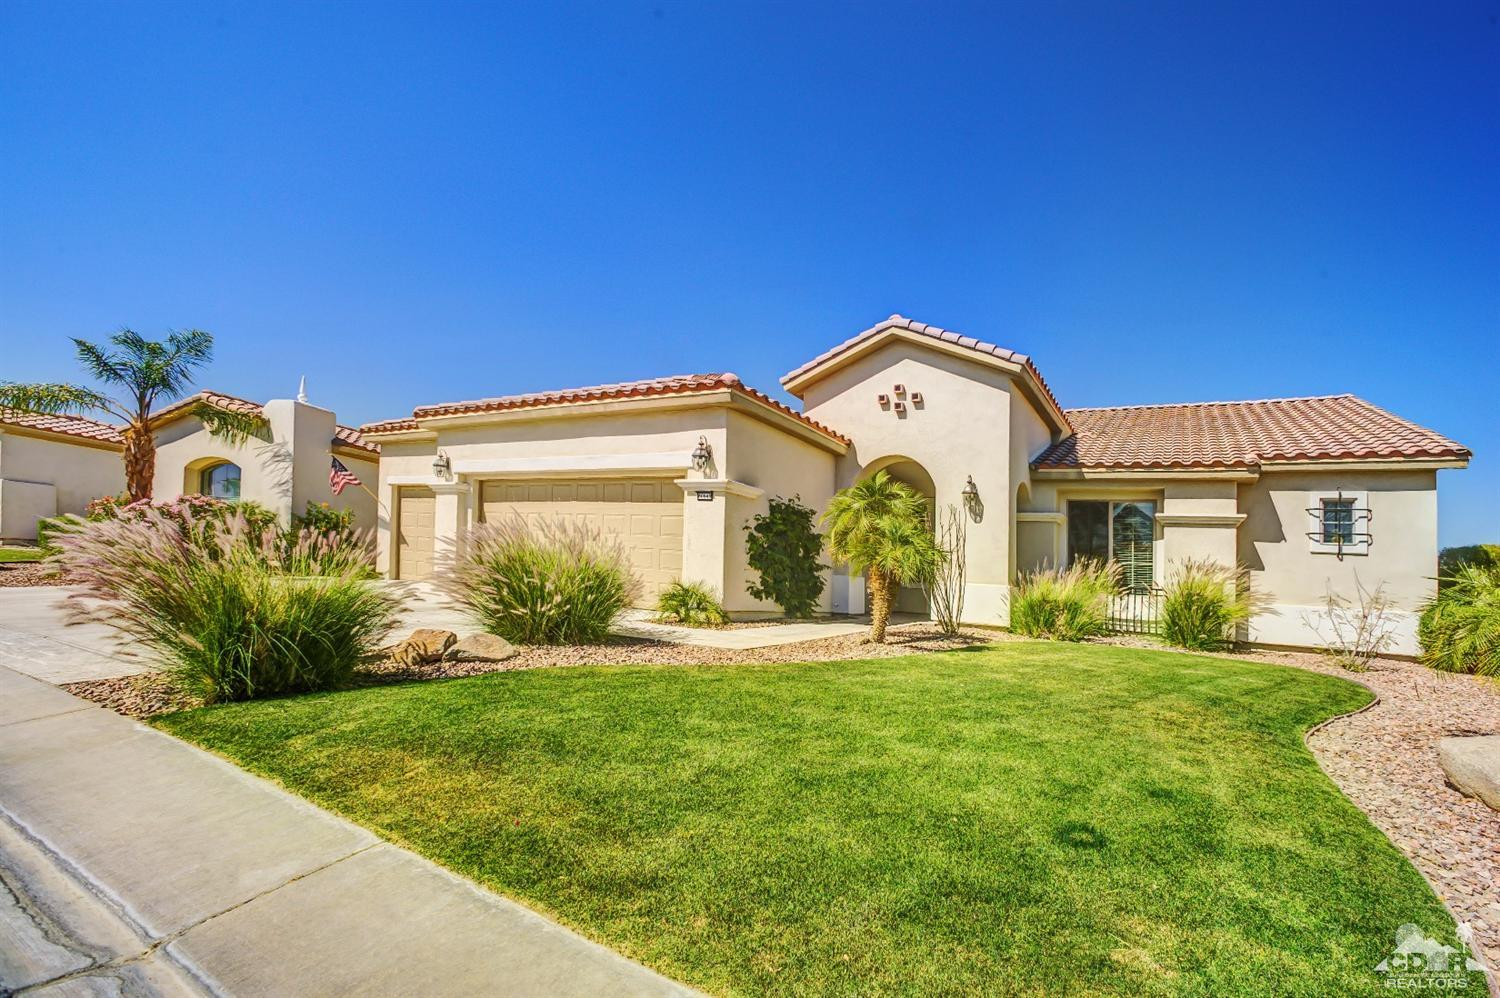 80640 Camino San Lucas, Sun City Shadow Hills